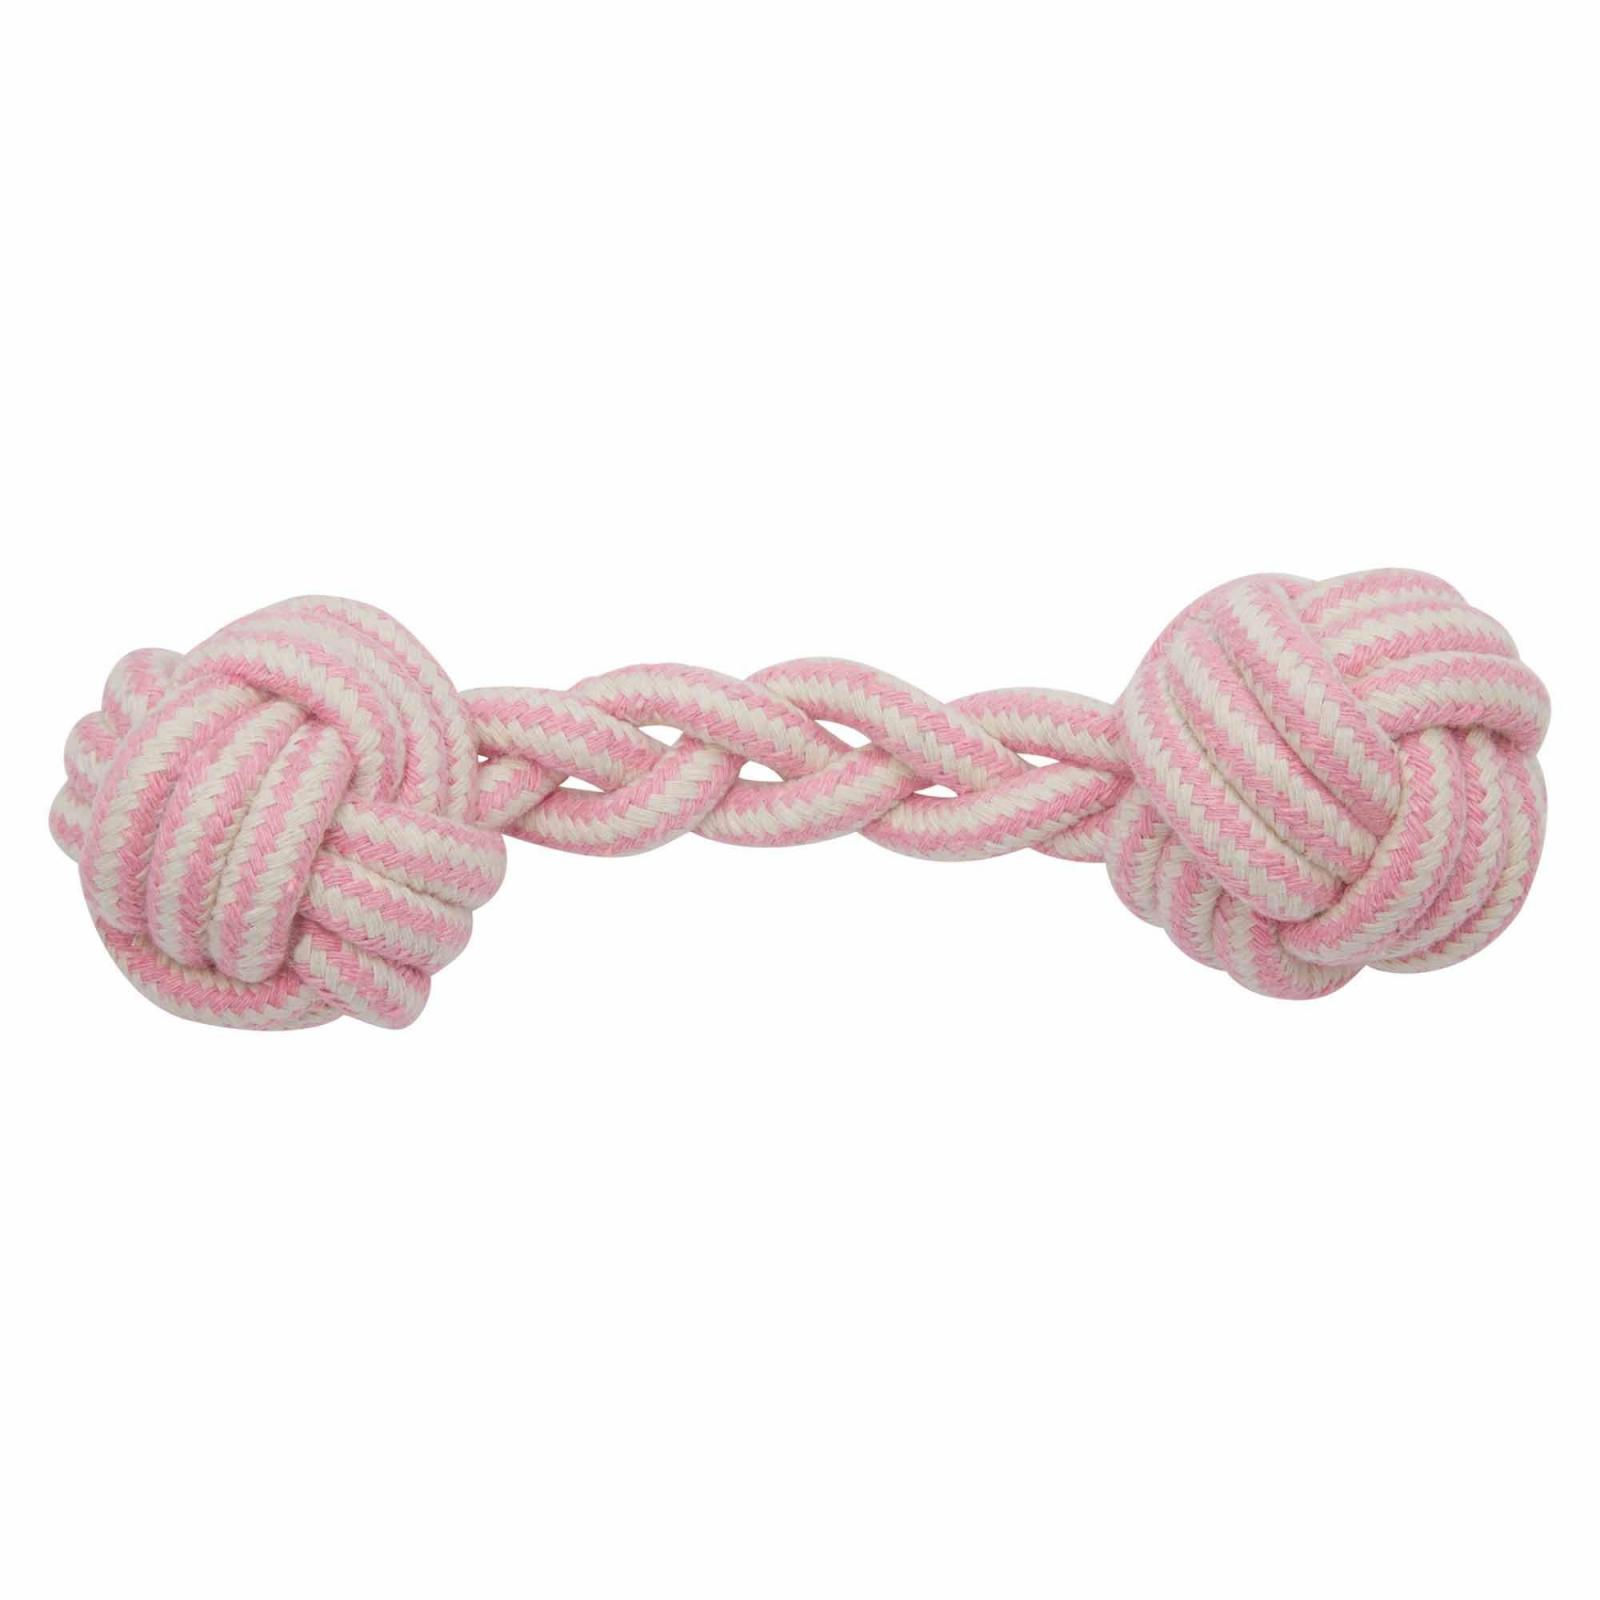 LEXI & ME Lexi & Me Rope Toy Double Knot Bone